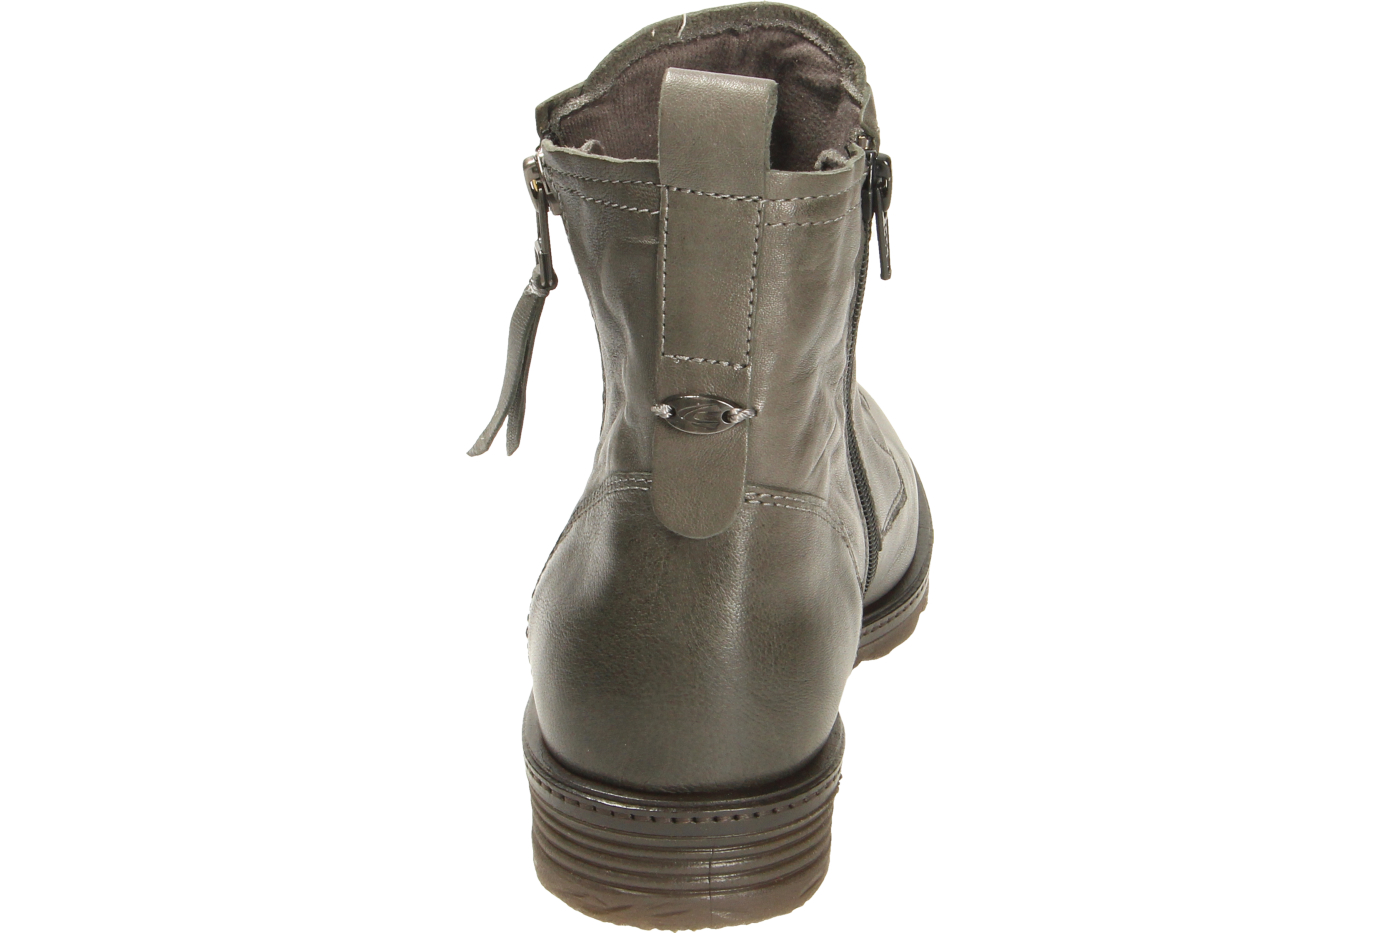 camel active Aged 77 Stiefelette Stiefelette 871.77.02 4.5